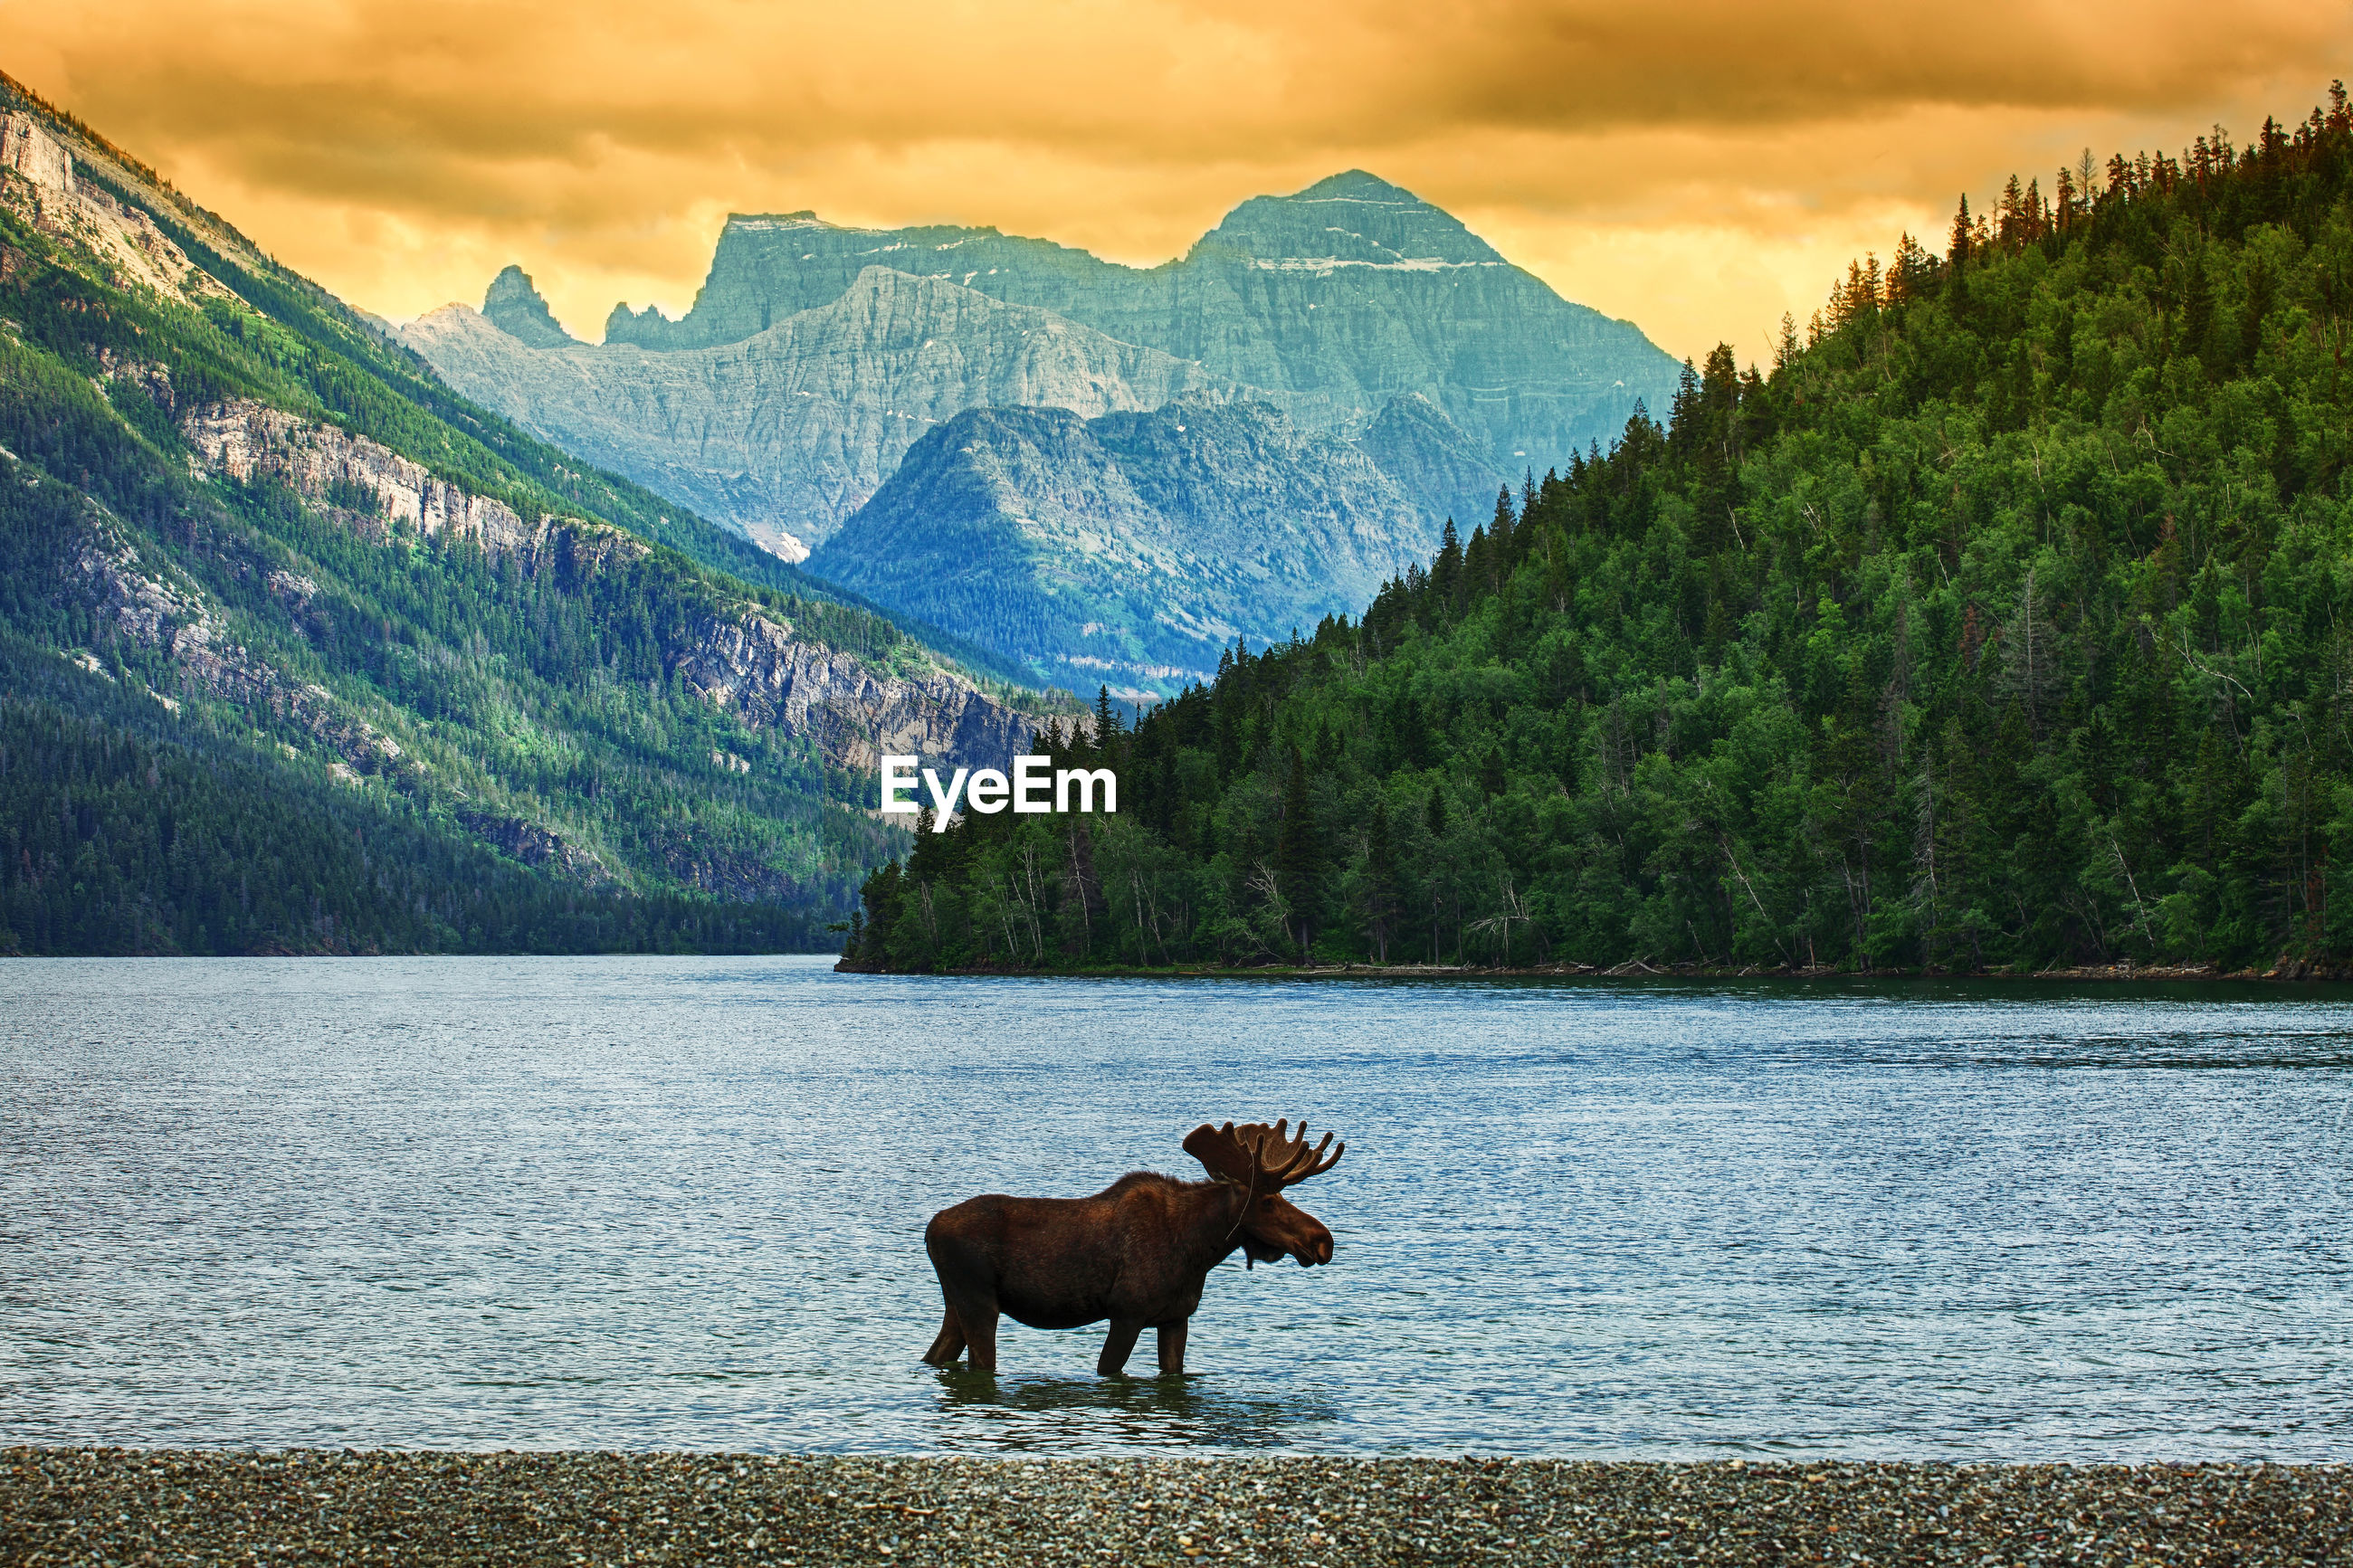 HORSE STANDING ON A LAKE